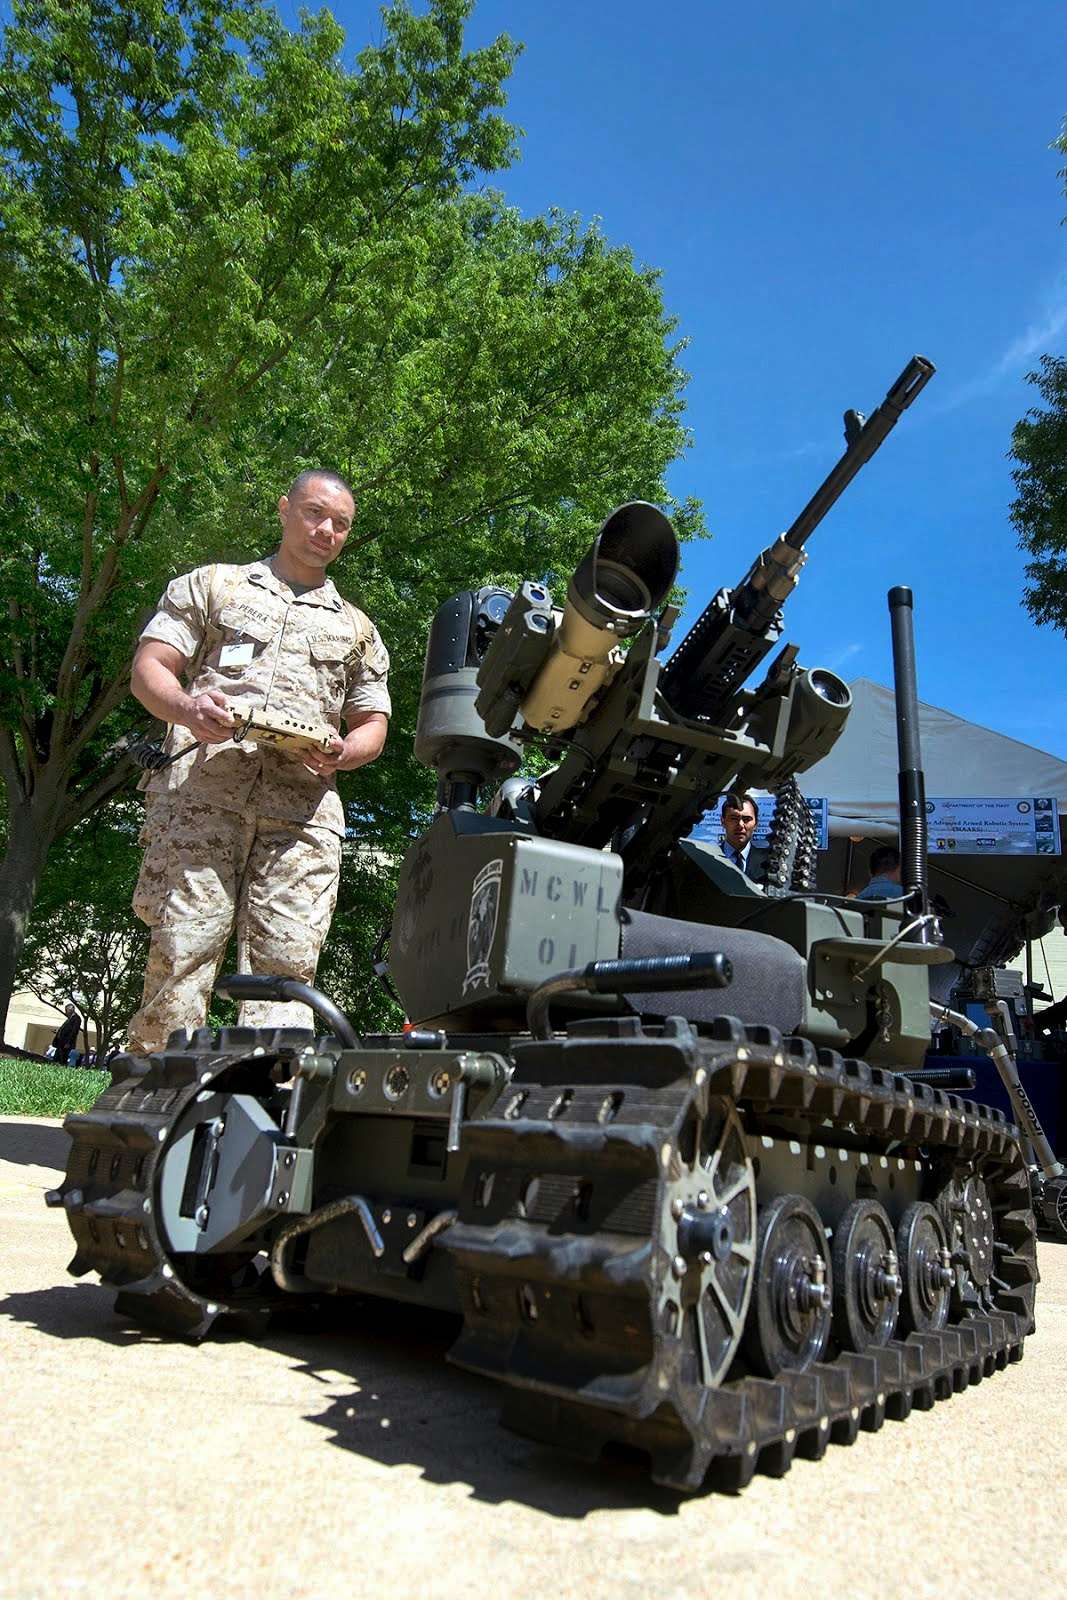 MILITARY ROBOT DISPLAYED AT DOD LAB DAY